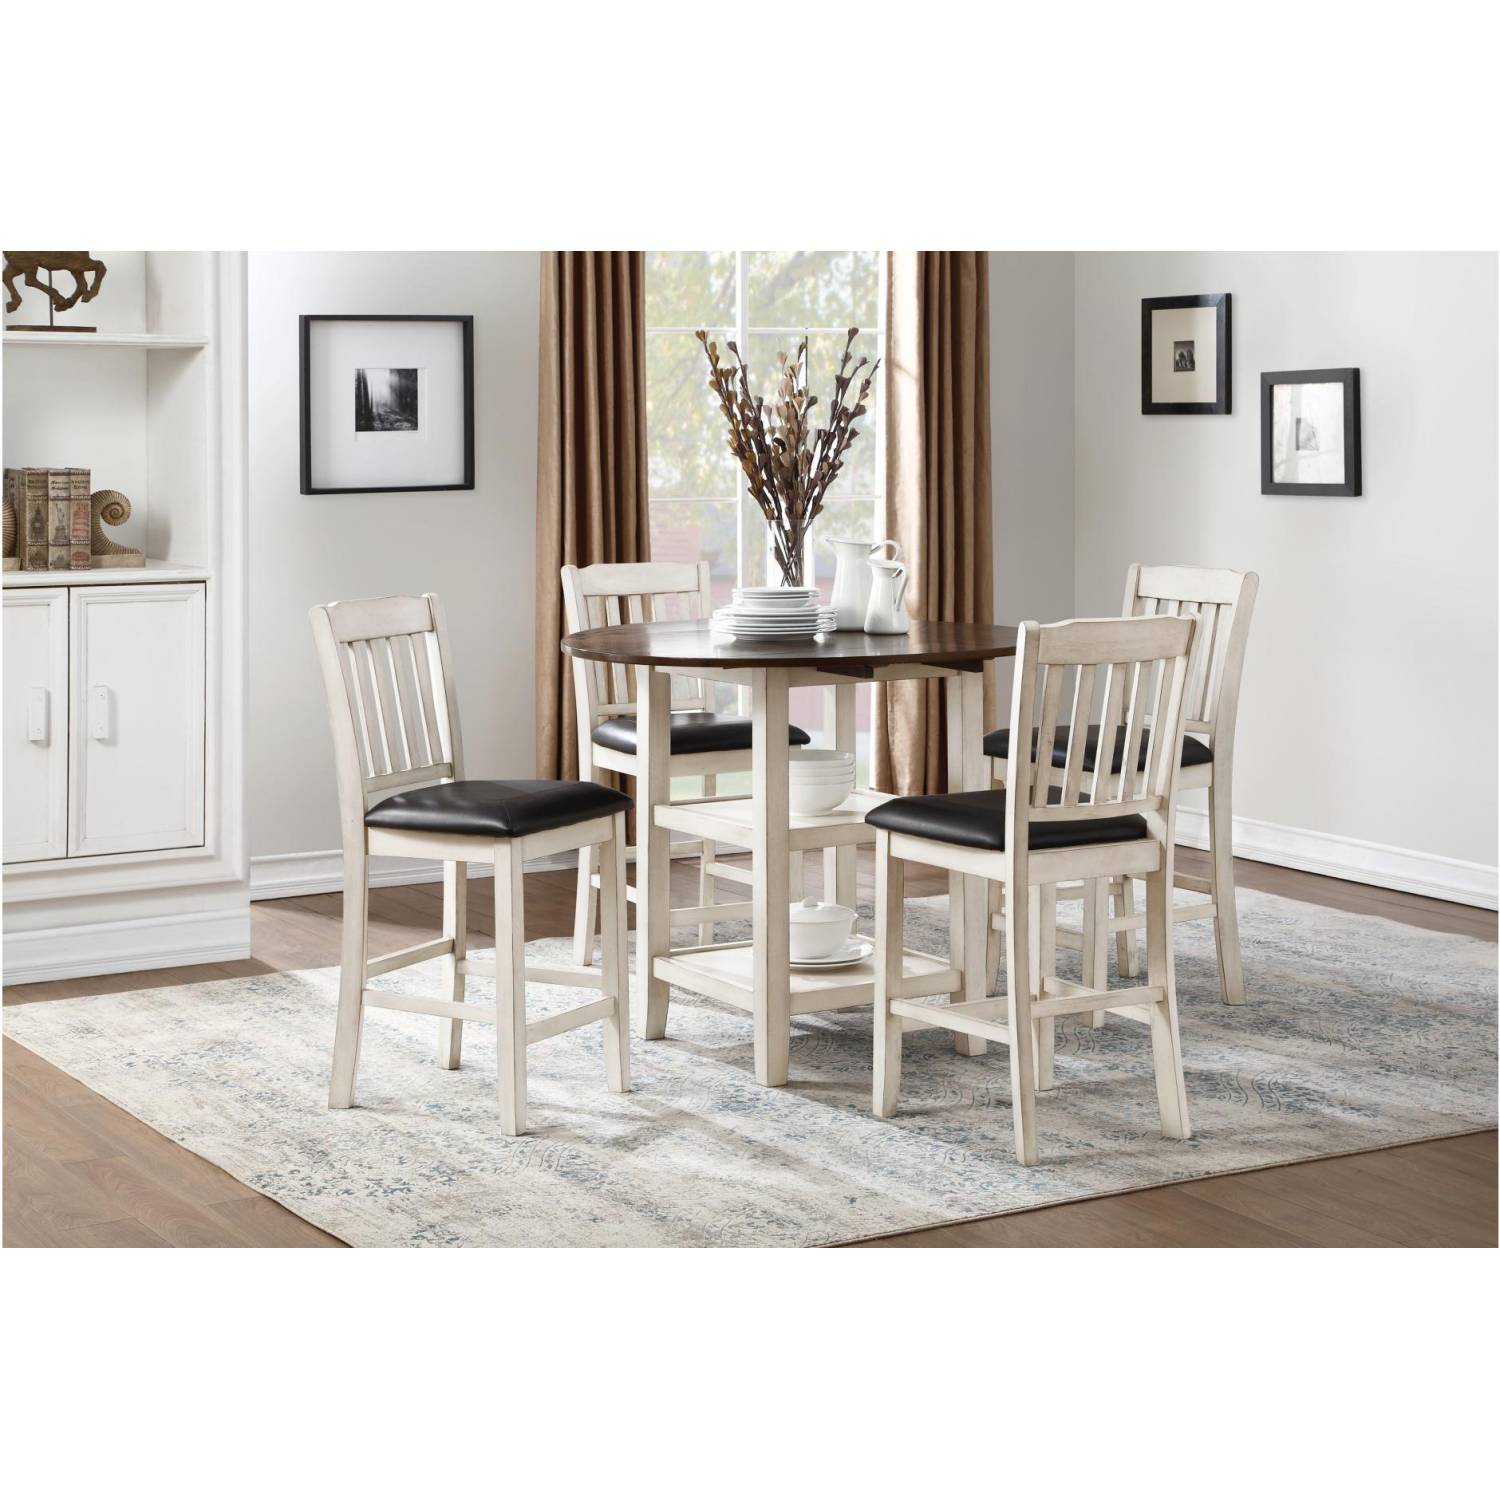 Kiwi 5pc Sets Counter Height Drop Leaf Table 4 Counter Height